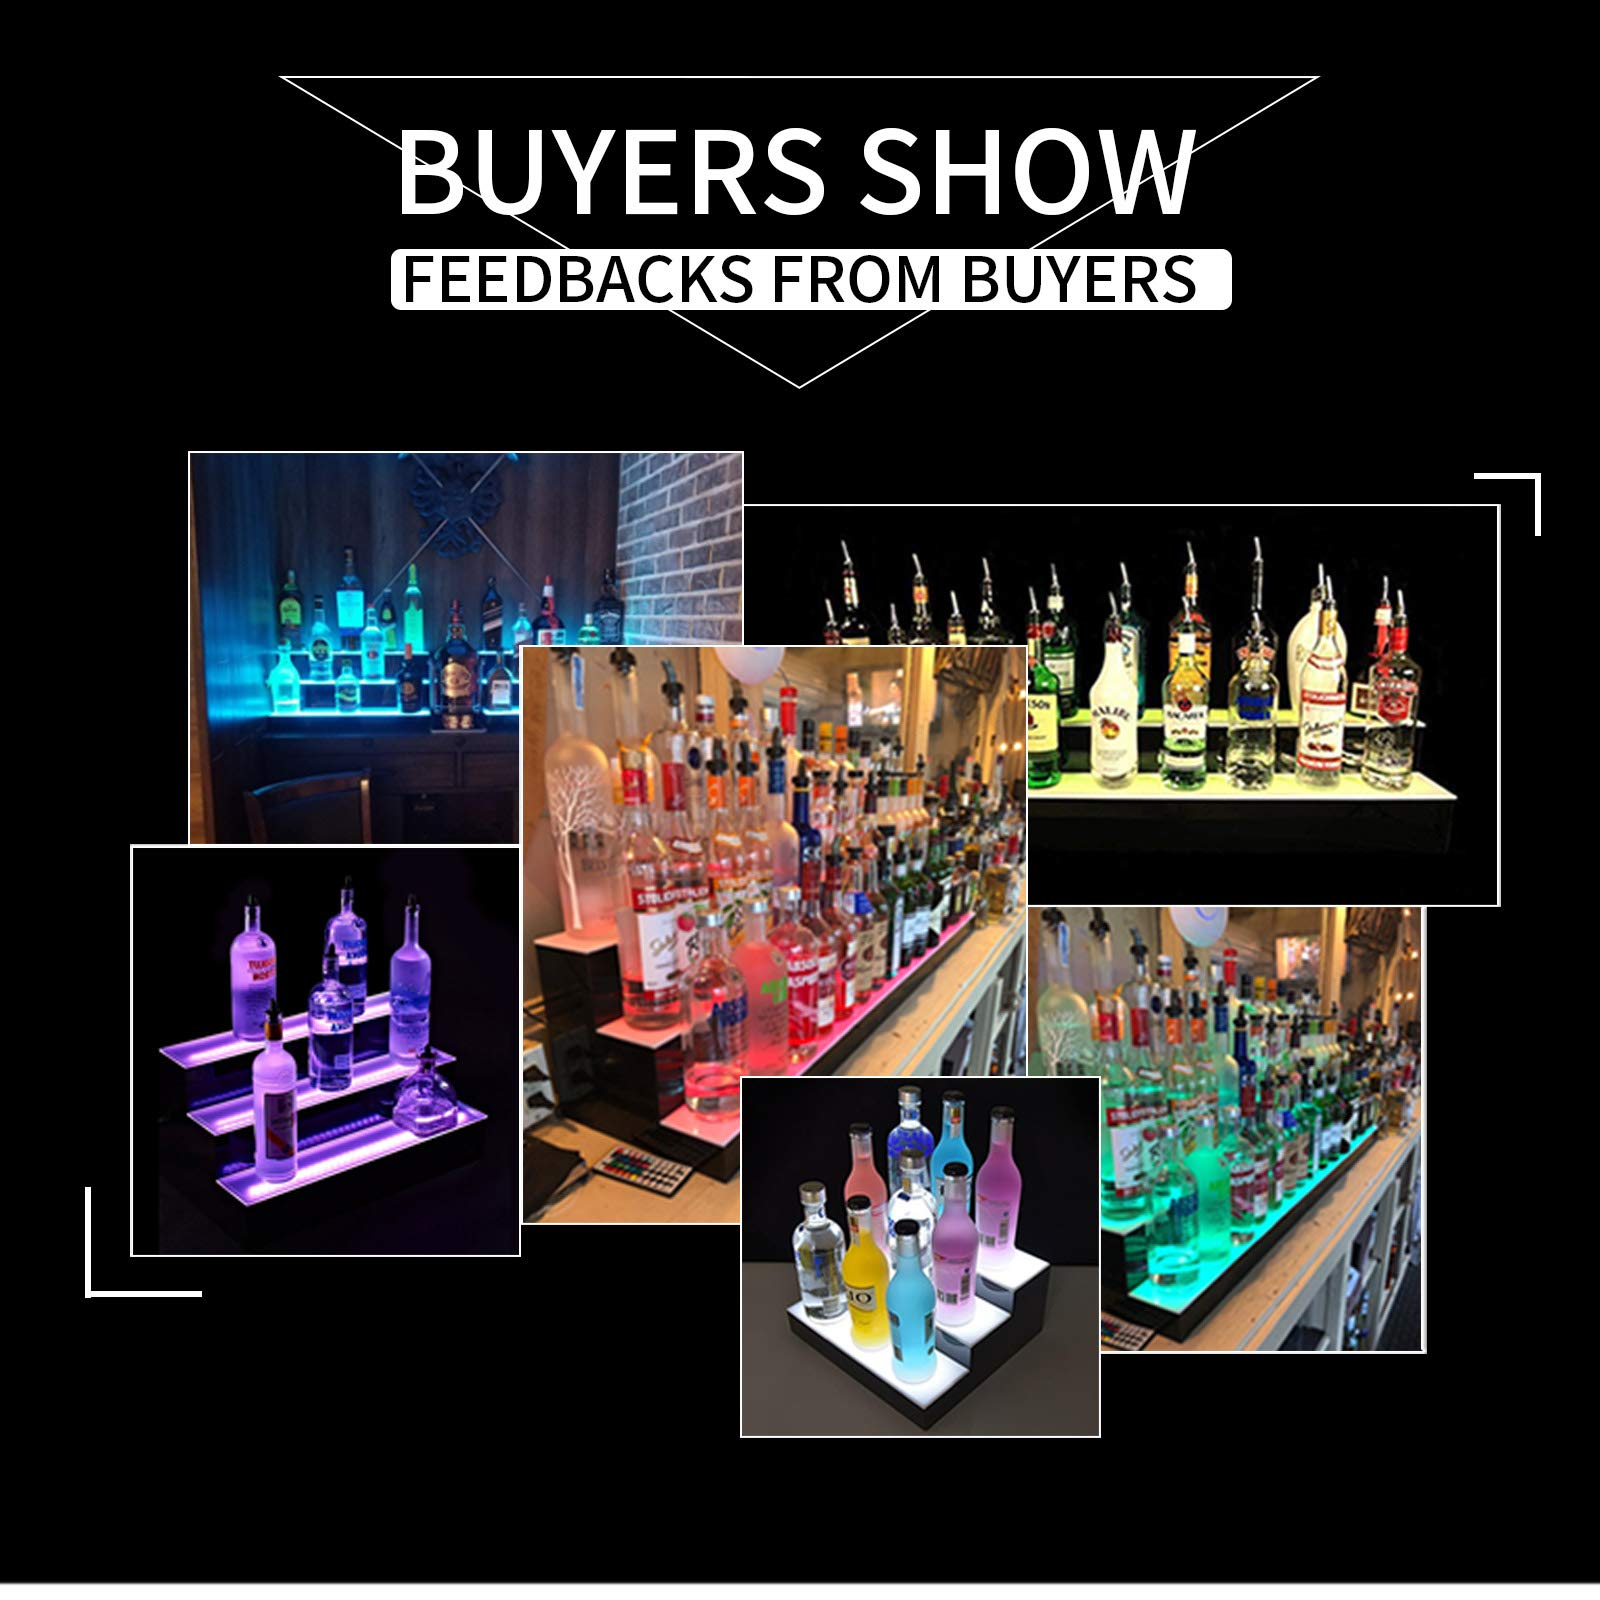 SUNCOO LED Lighted Liquor Bottle Display 60'' 3 Step Illuminated Bottle Shelf 3 Tier Home Bar Bottle Shelf Drinks Lighting Shelves with Remote Control by SUNCOO (Image #5)